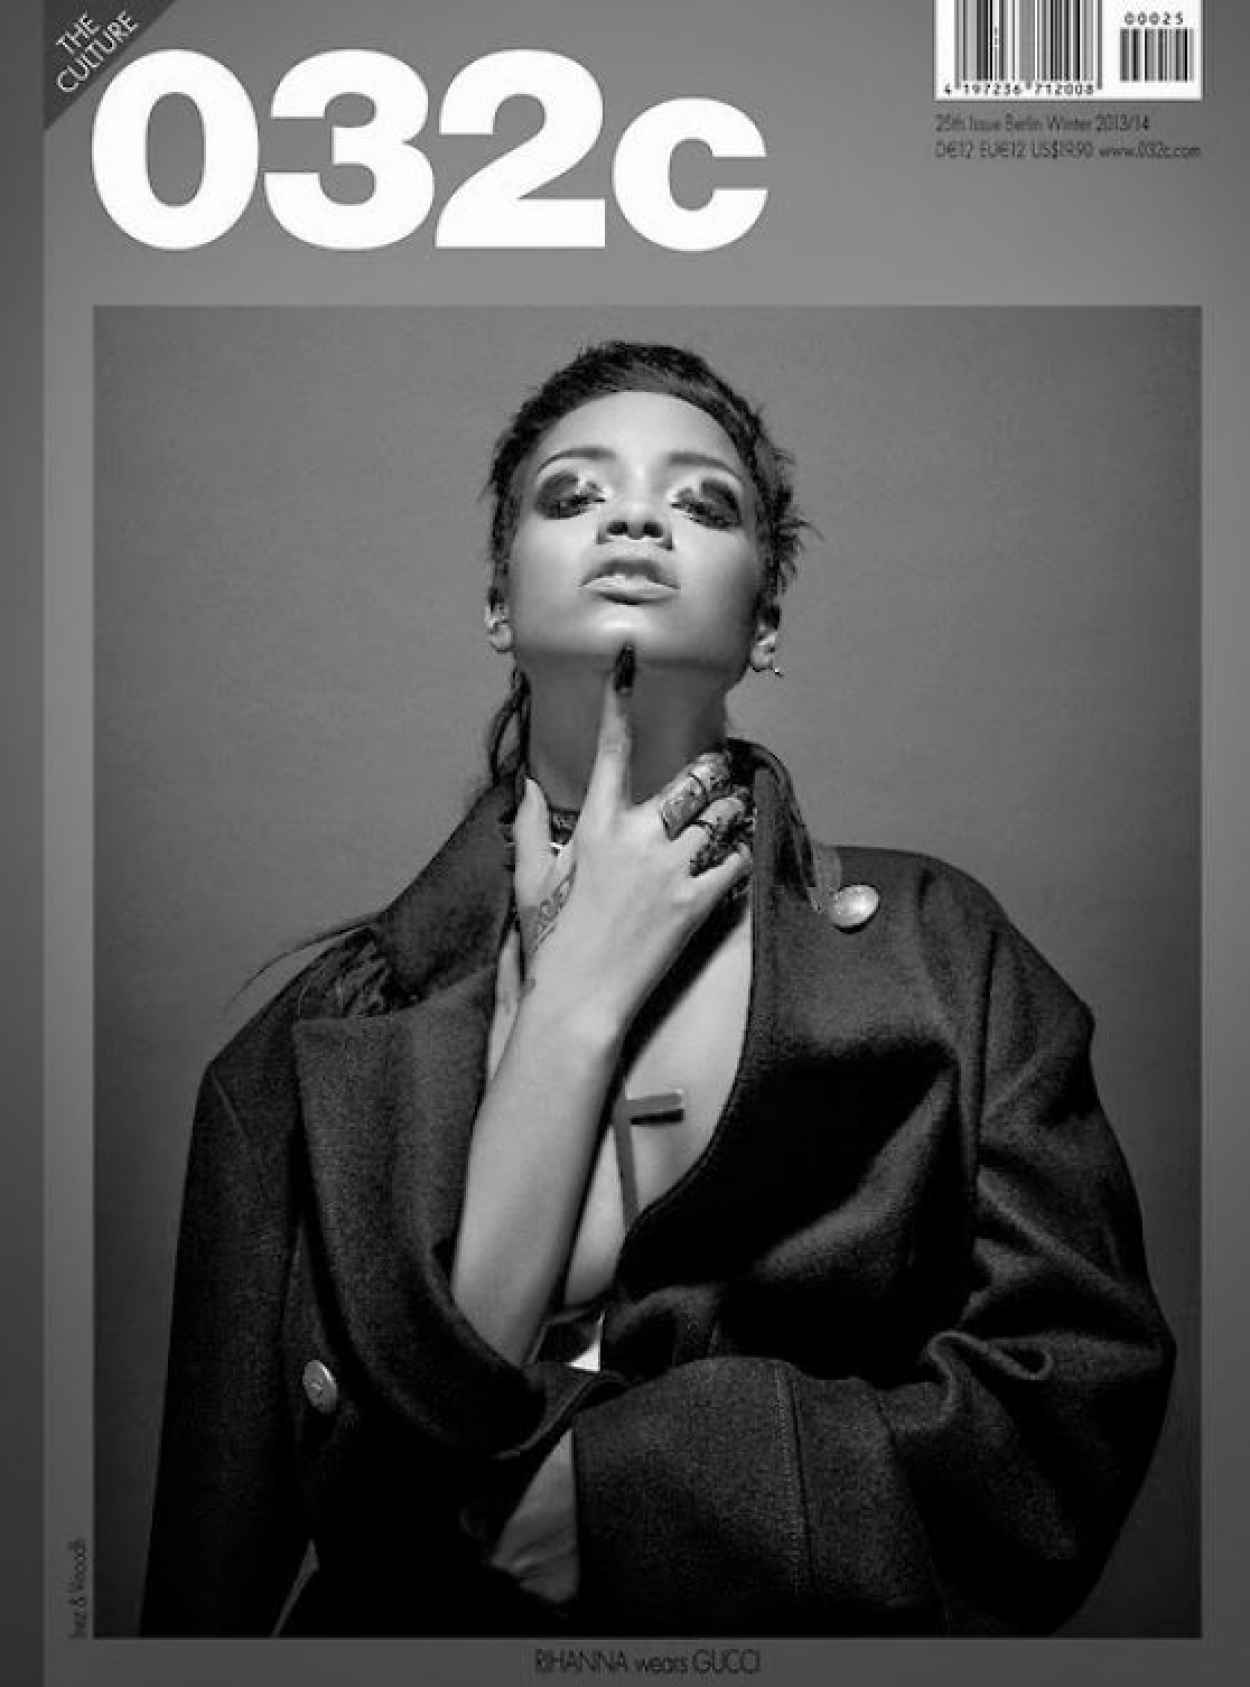 Rihanna Photoshoot for 032C Magazine Winter 2015/2014-2